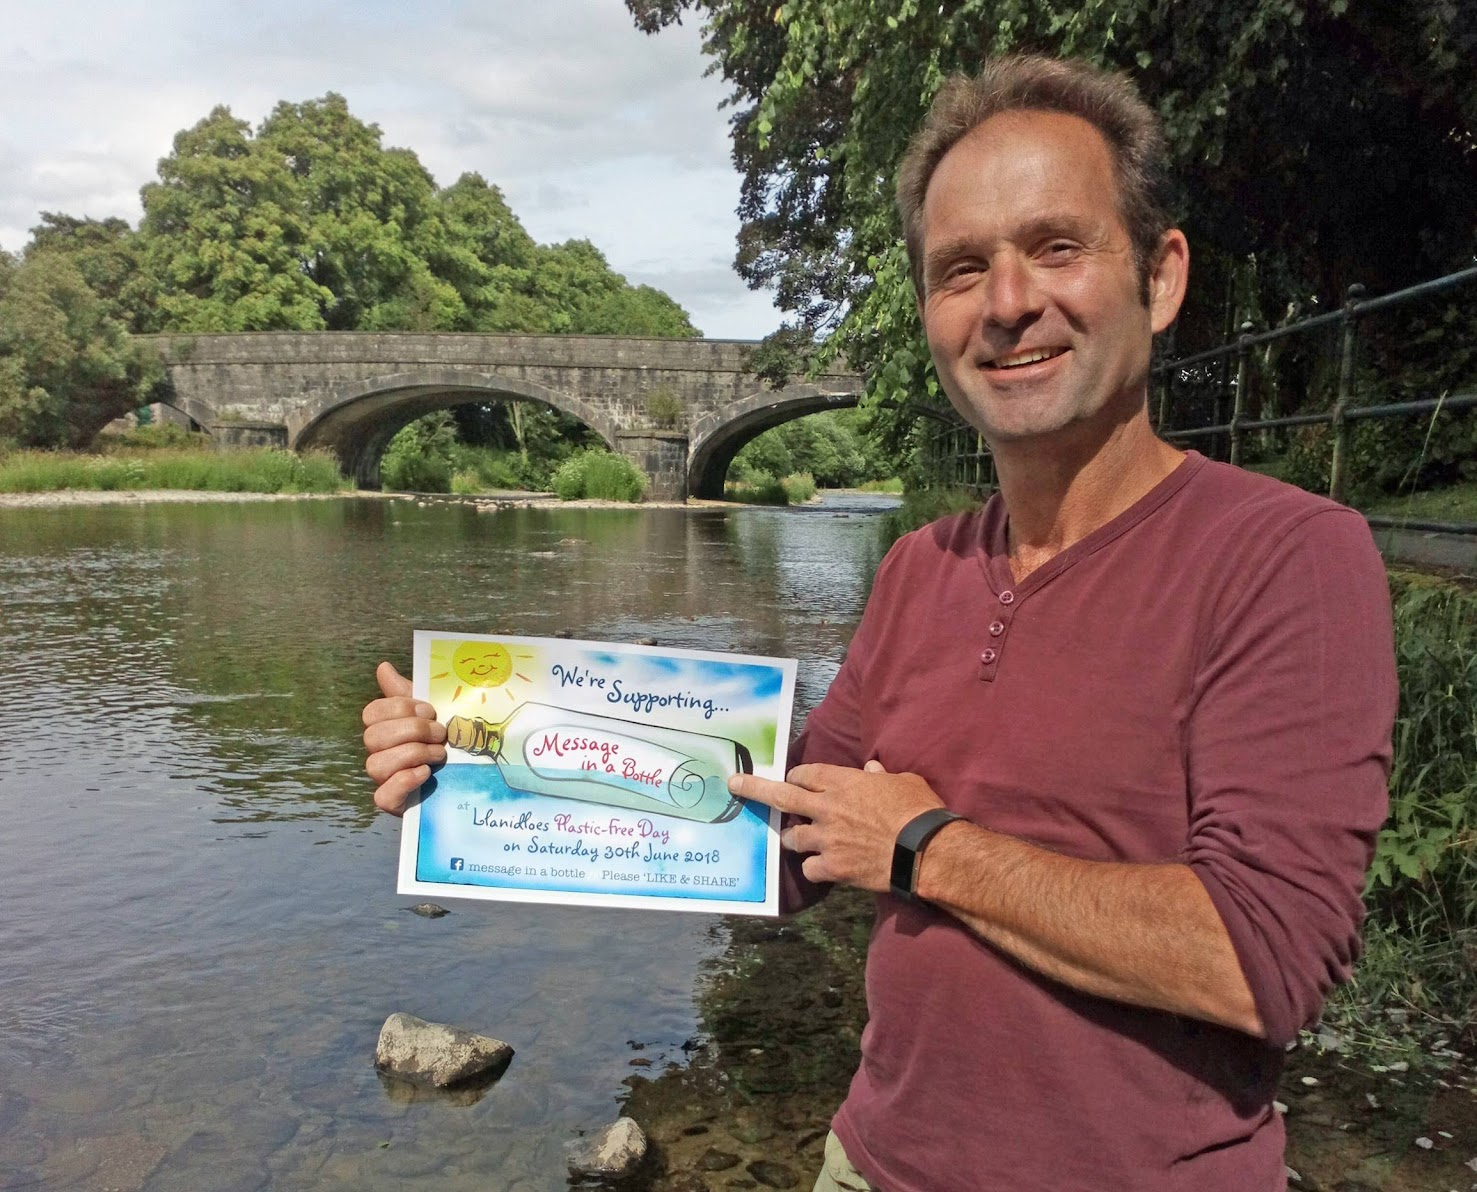 Message in a bottle campaign to clean up River Severn